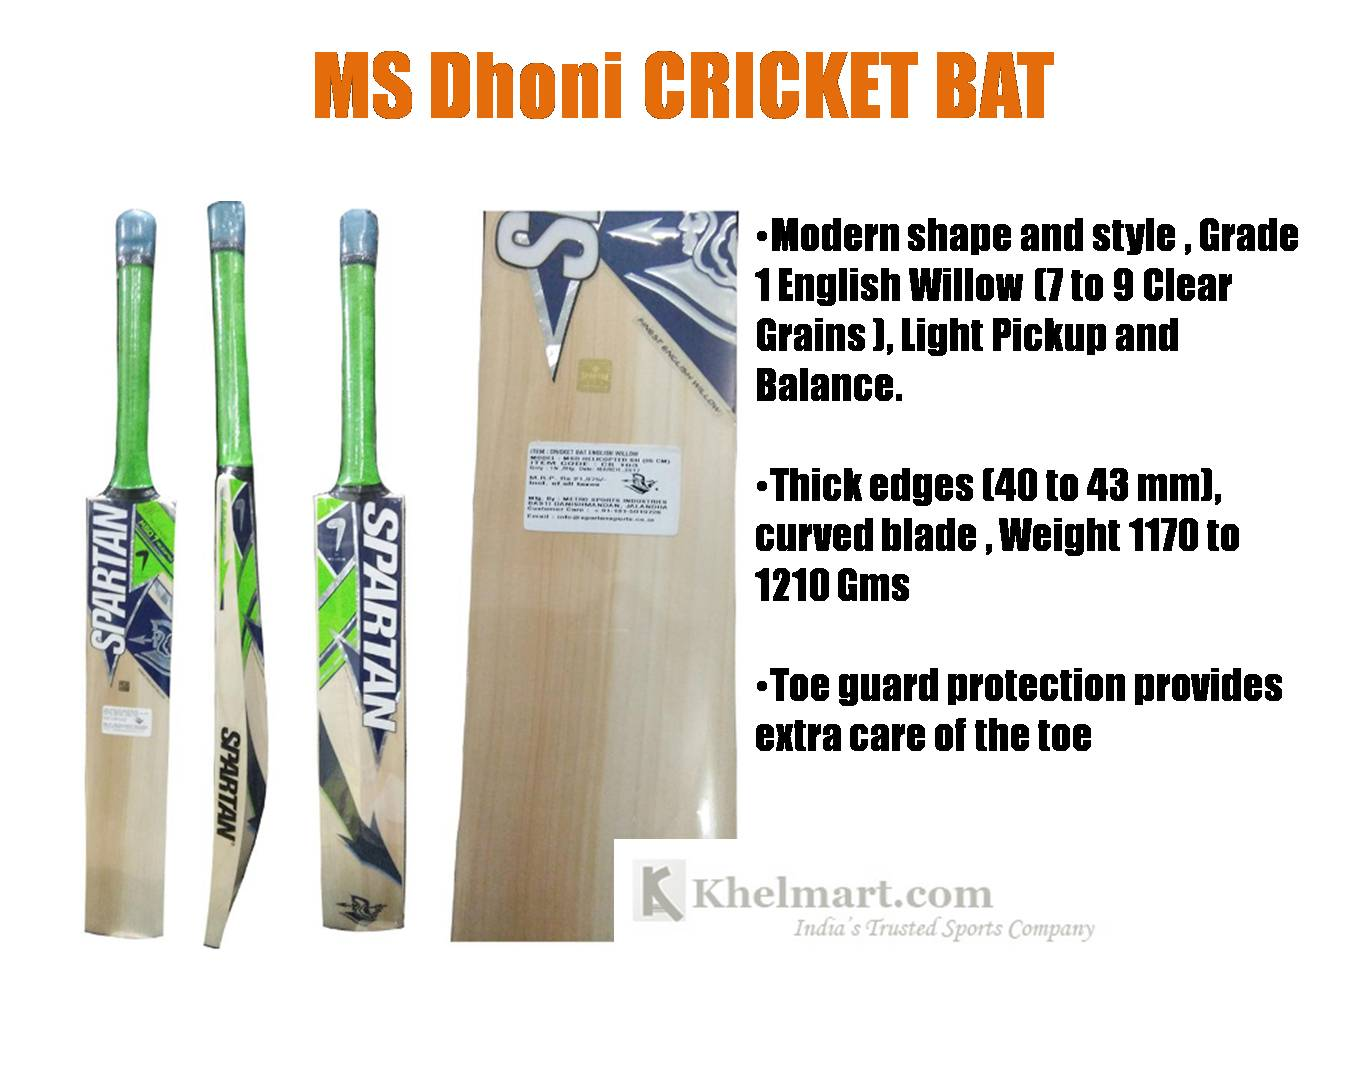 MSDhoni_Cricket_Bat_Khelmart